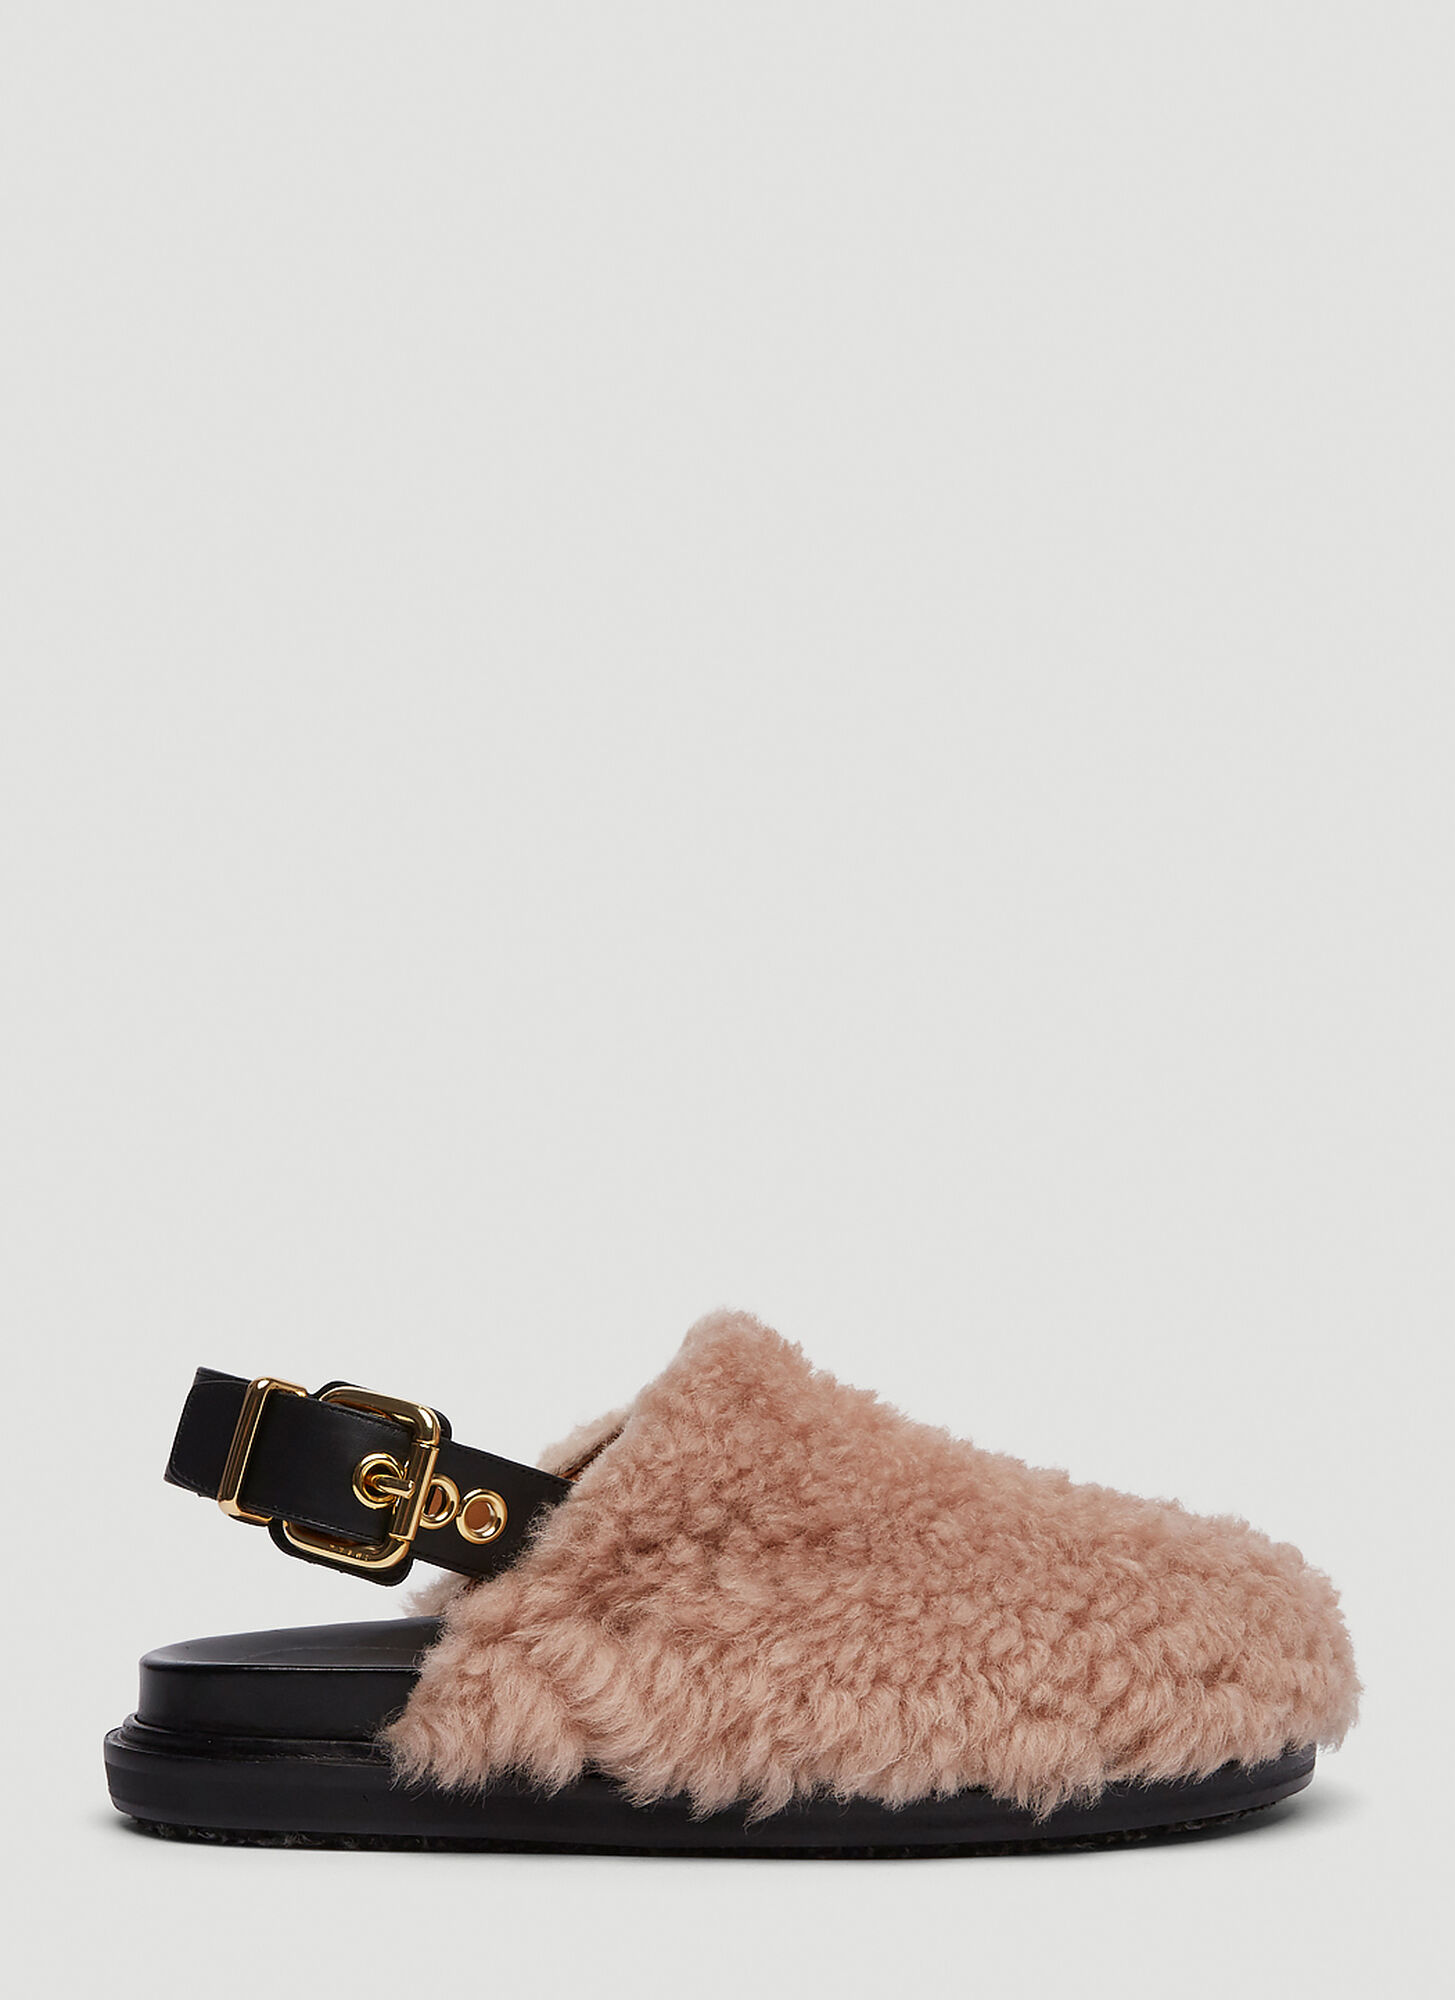 Marni Shearling Mule Sandals in Pink